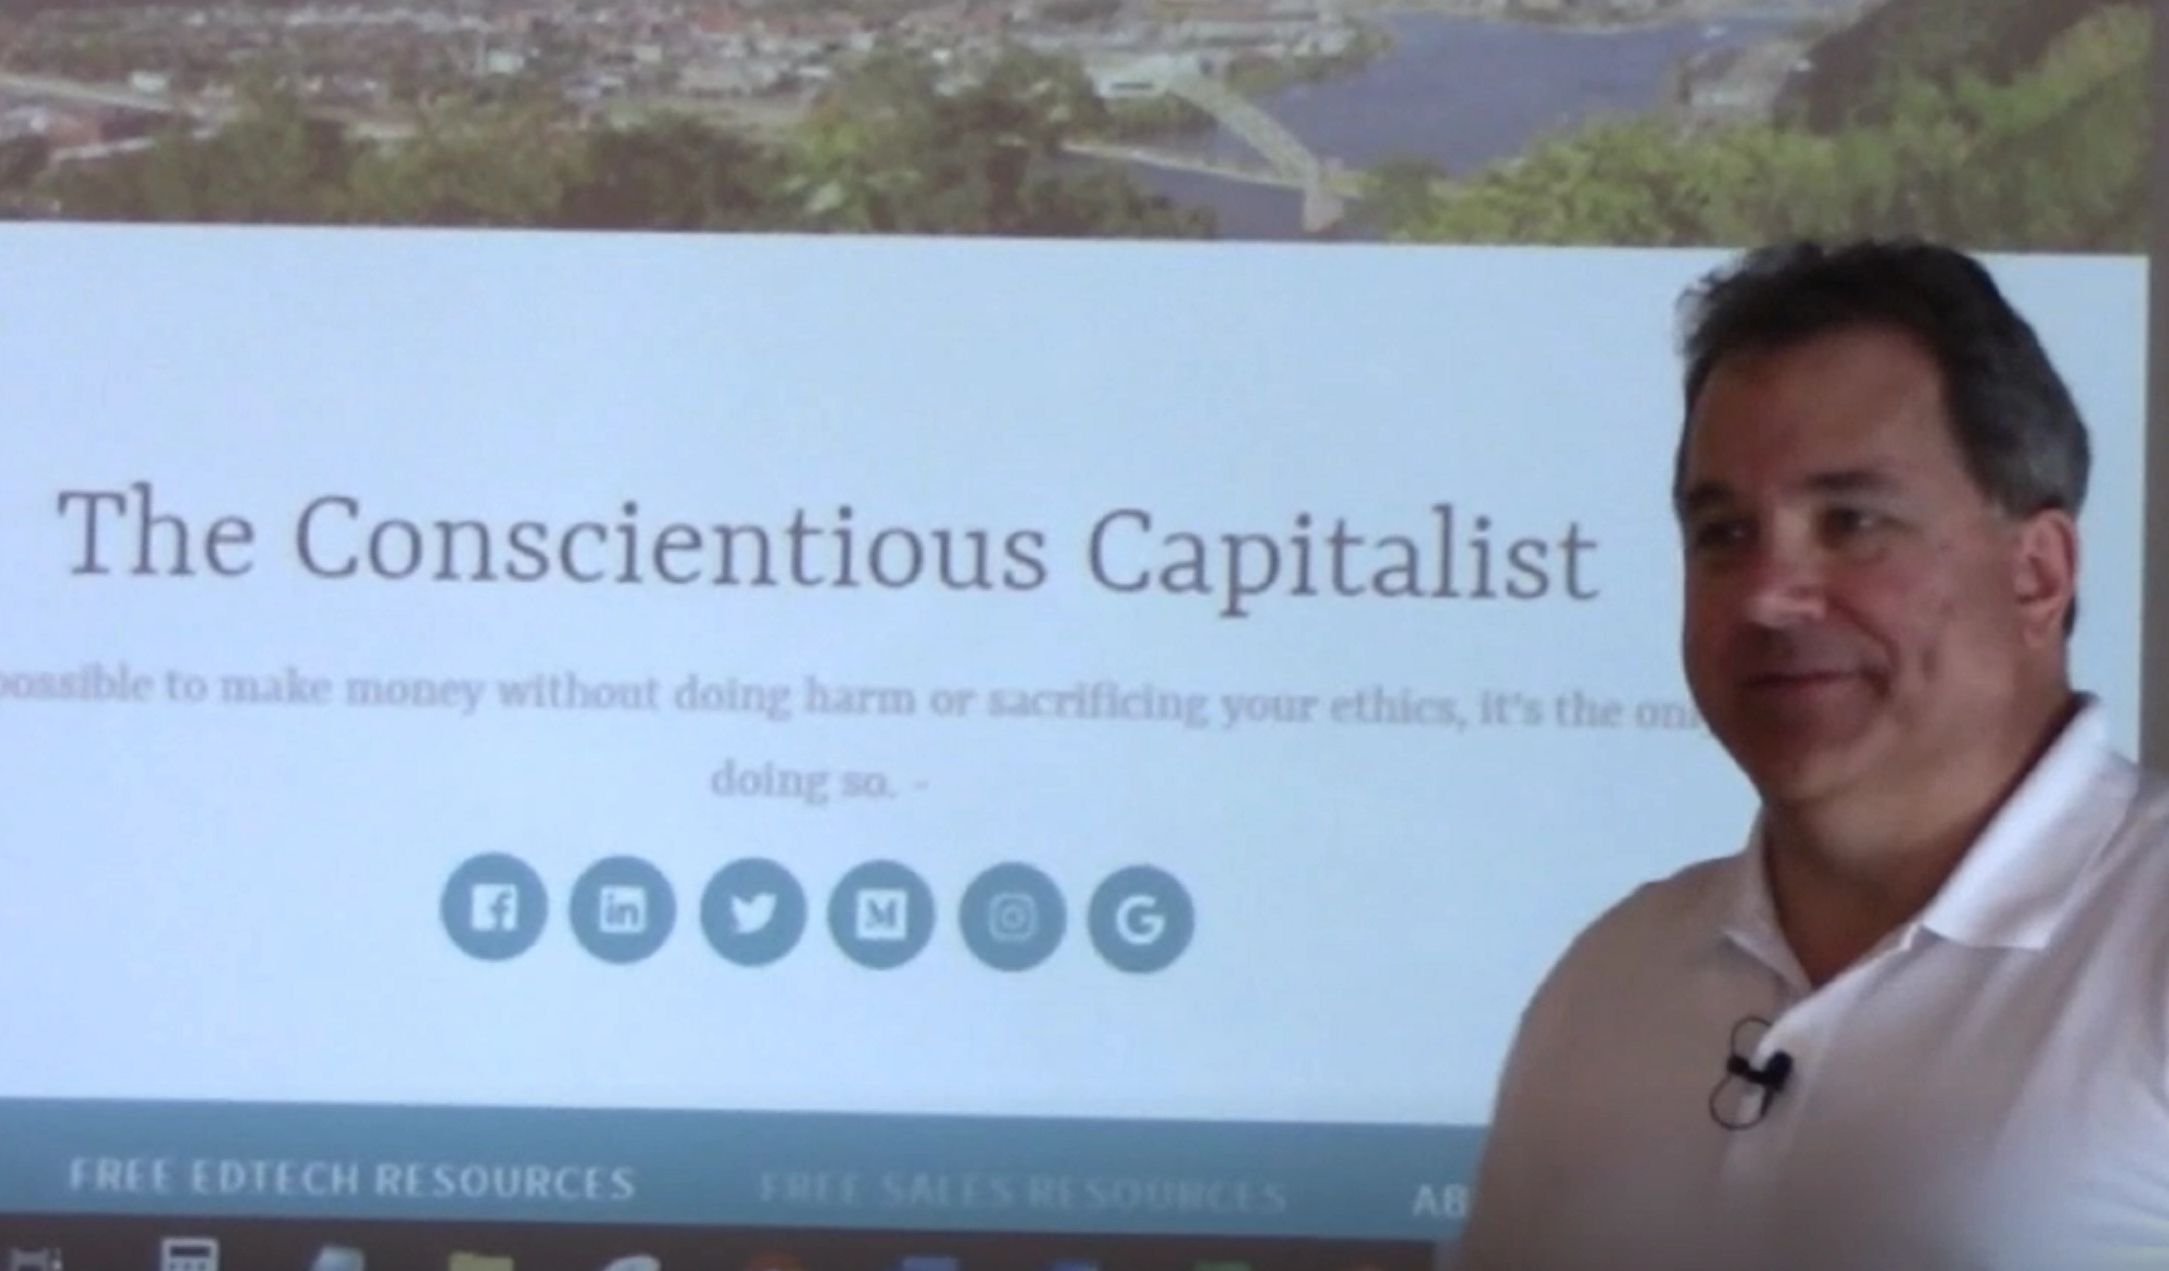 The Conscientious Capitalist presenting at startup incubator, Ascender, in Pittsburgh